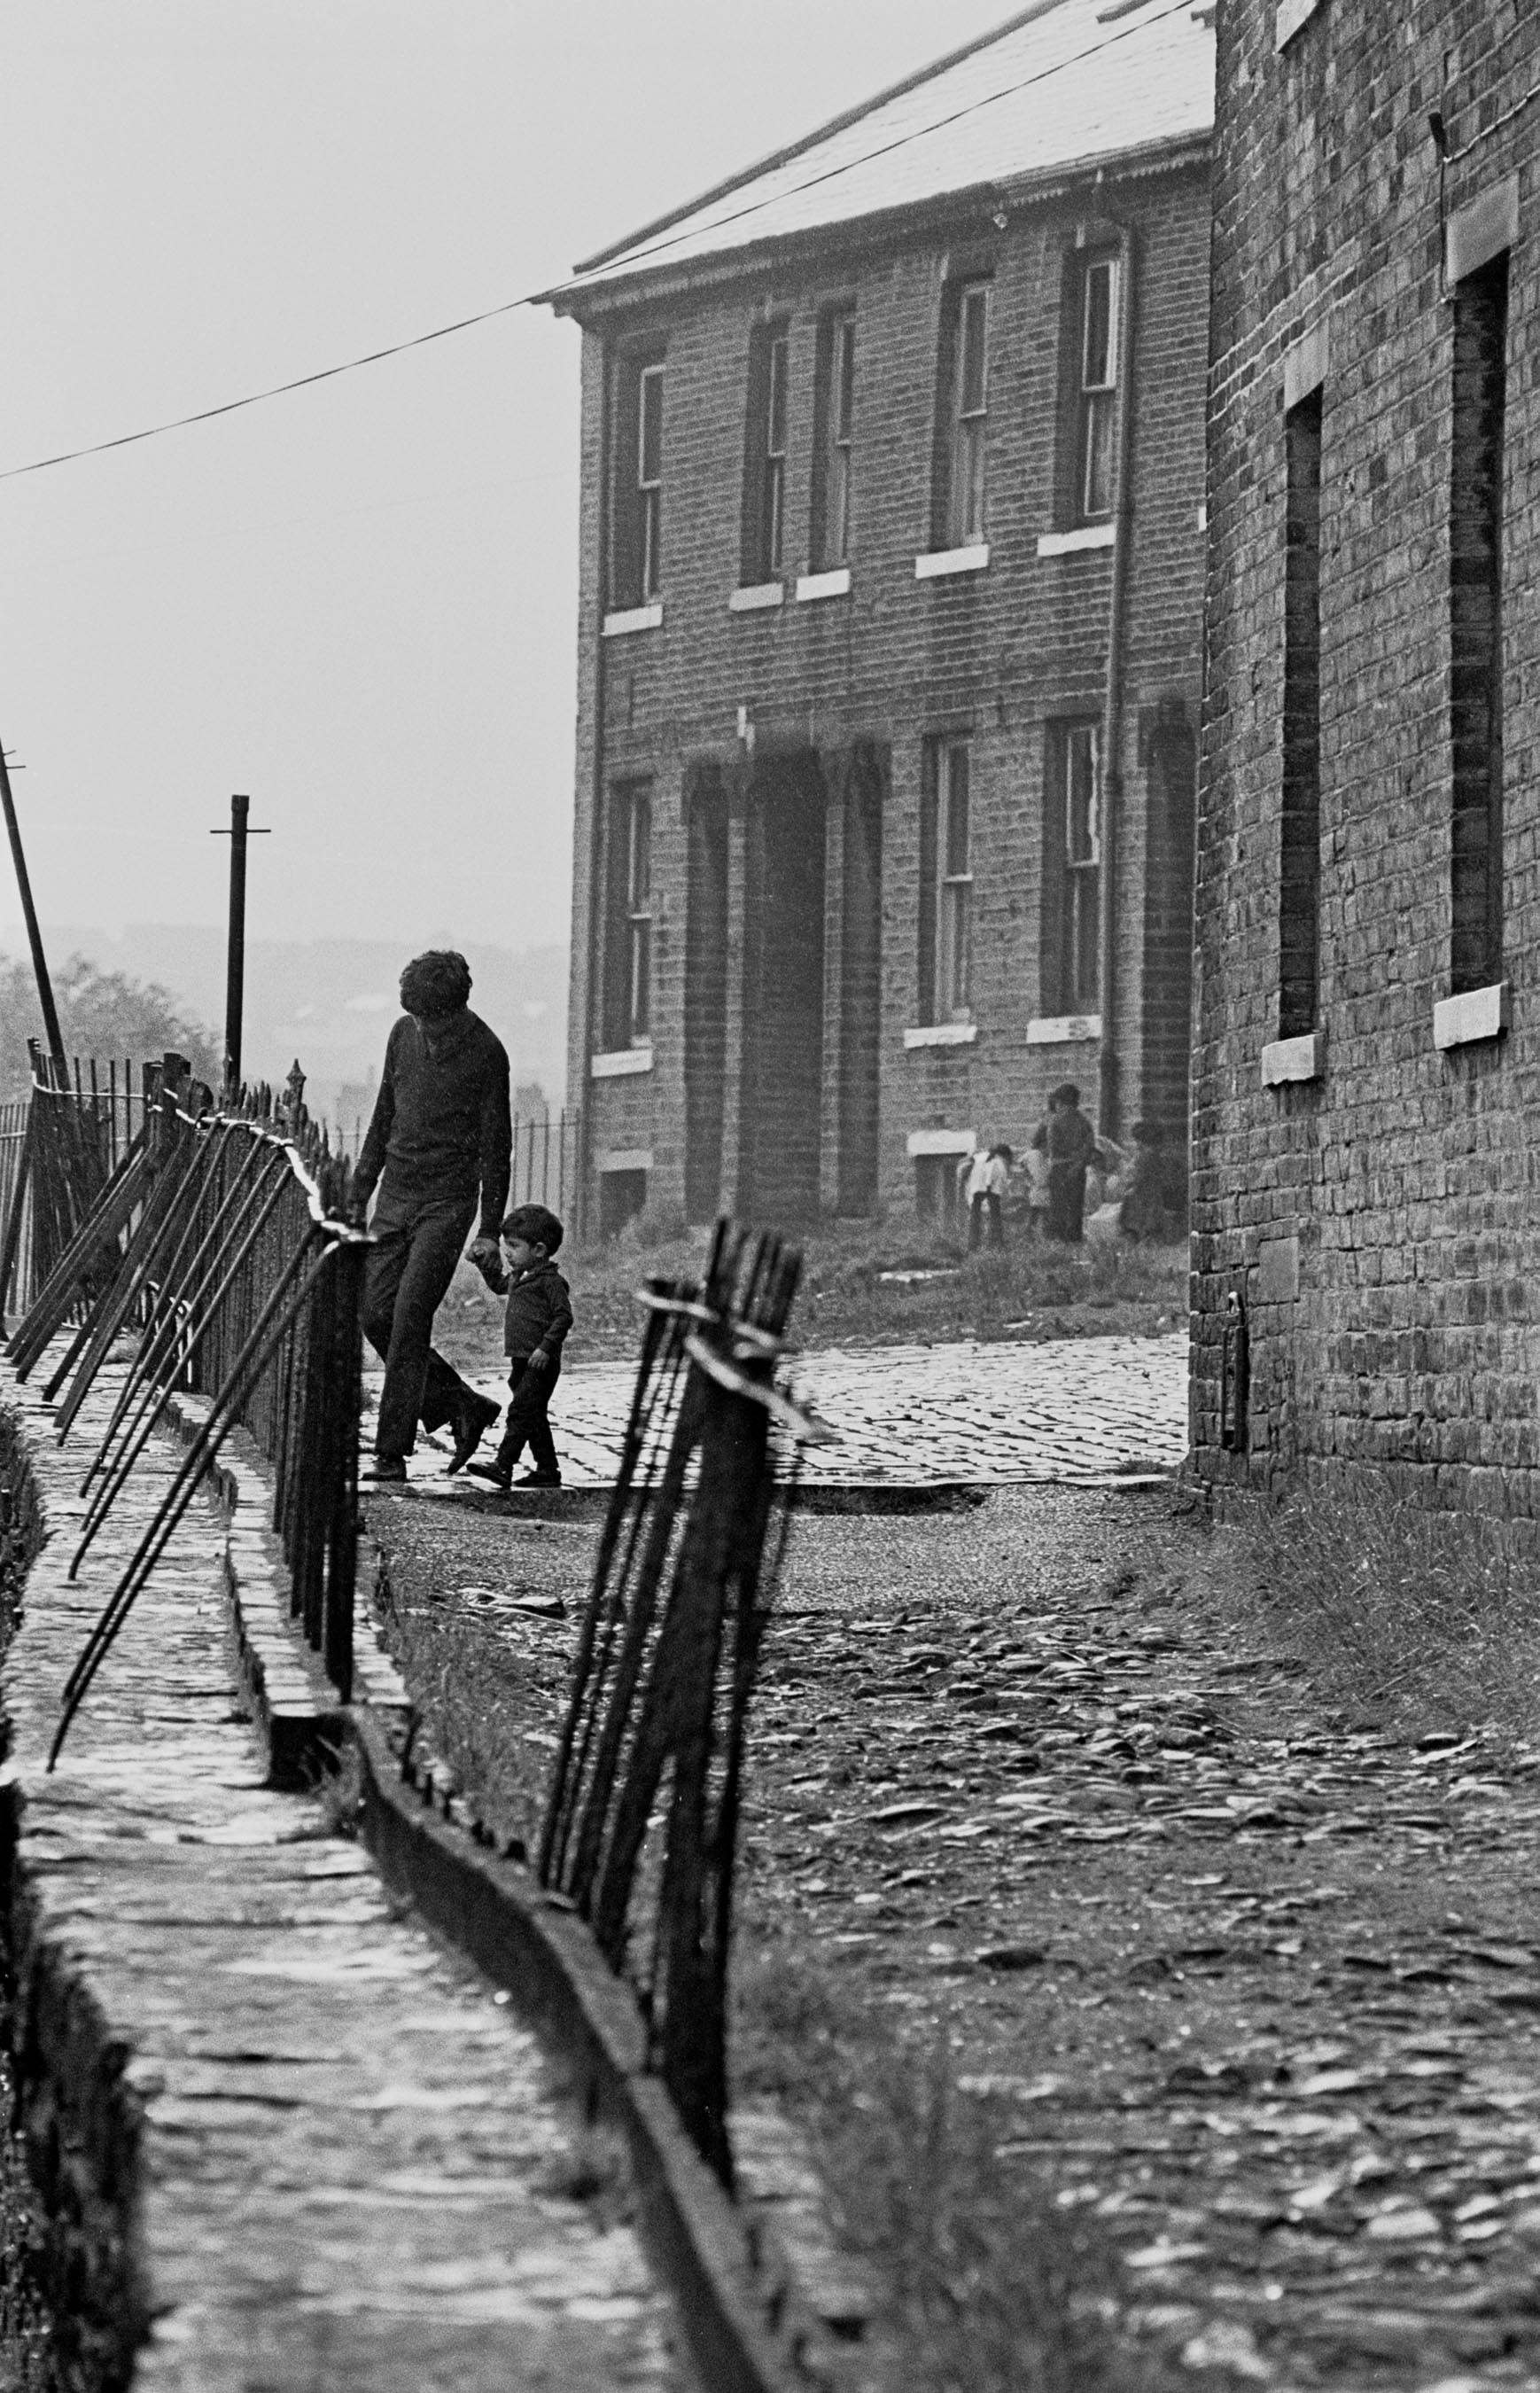 Photos Of Slum Life Bradford 1969-72 - Flashbak-8532